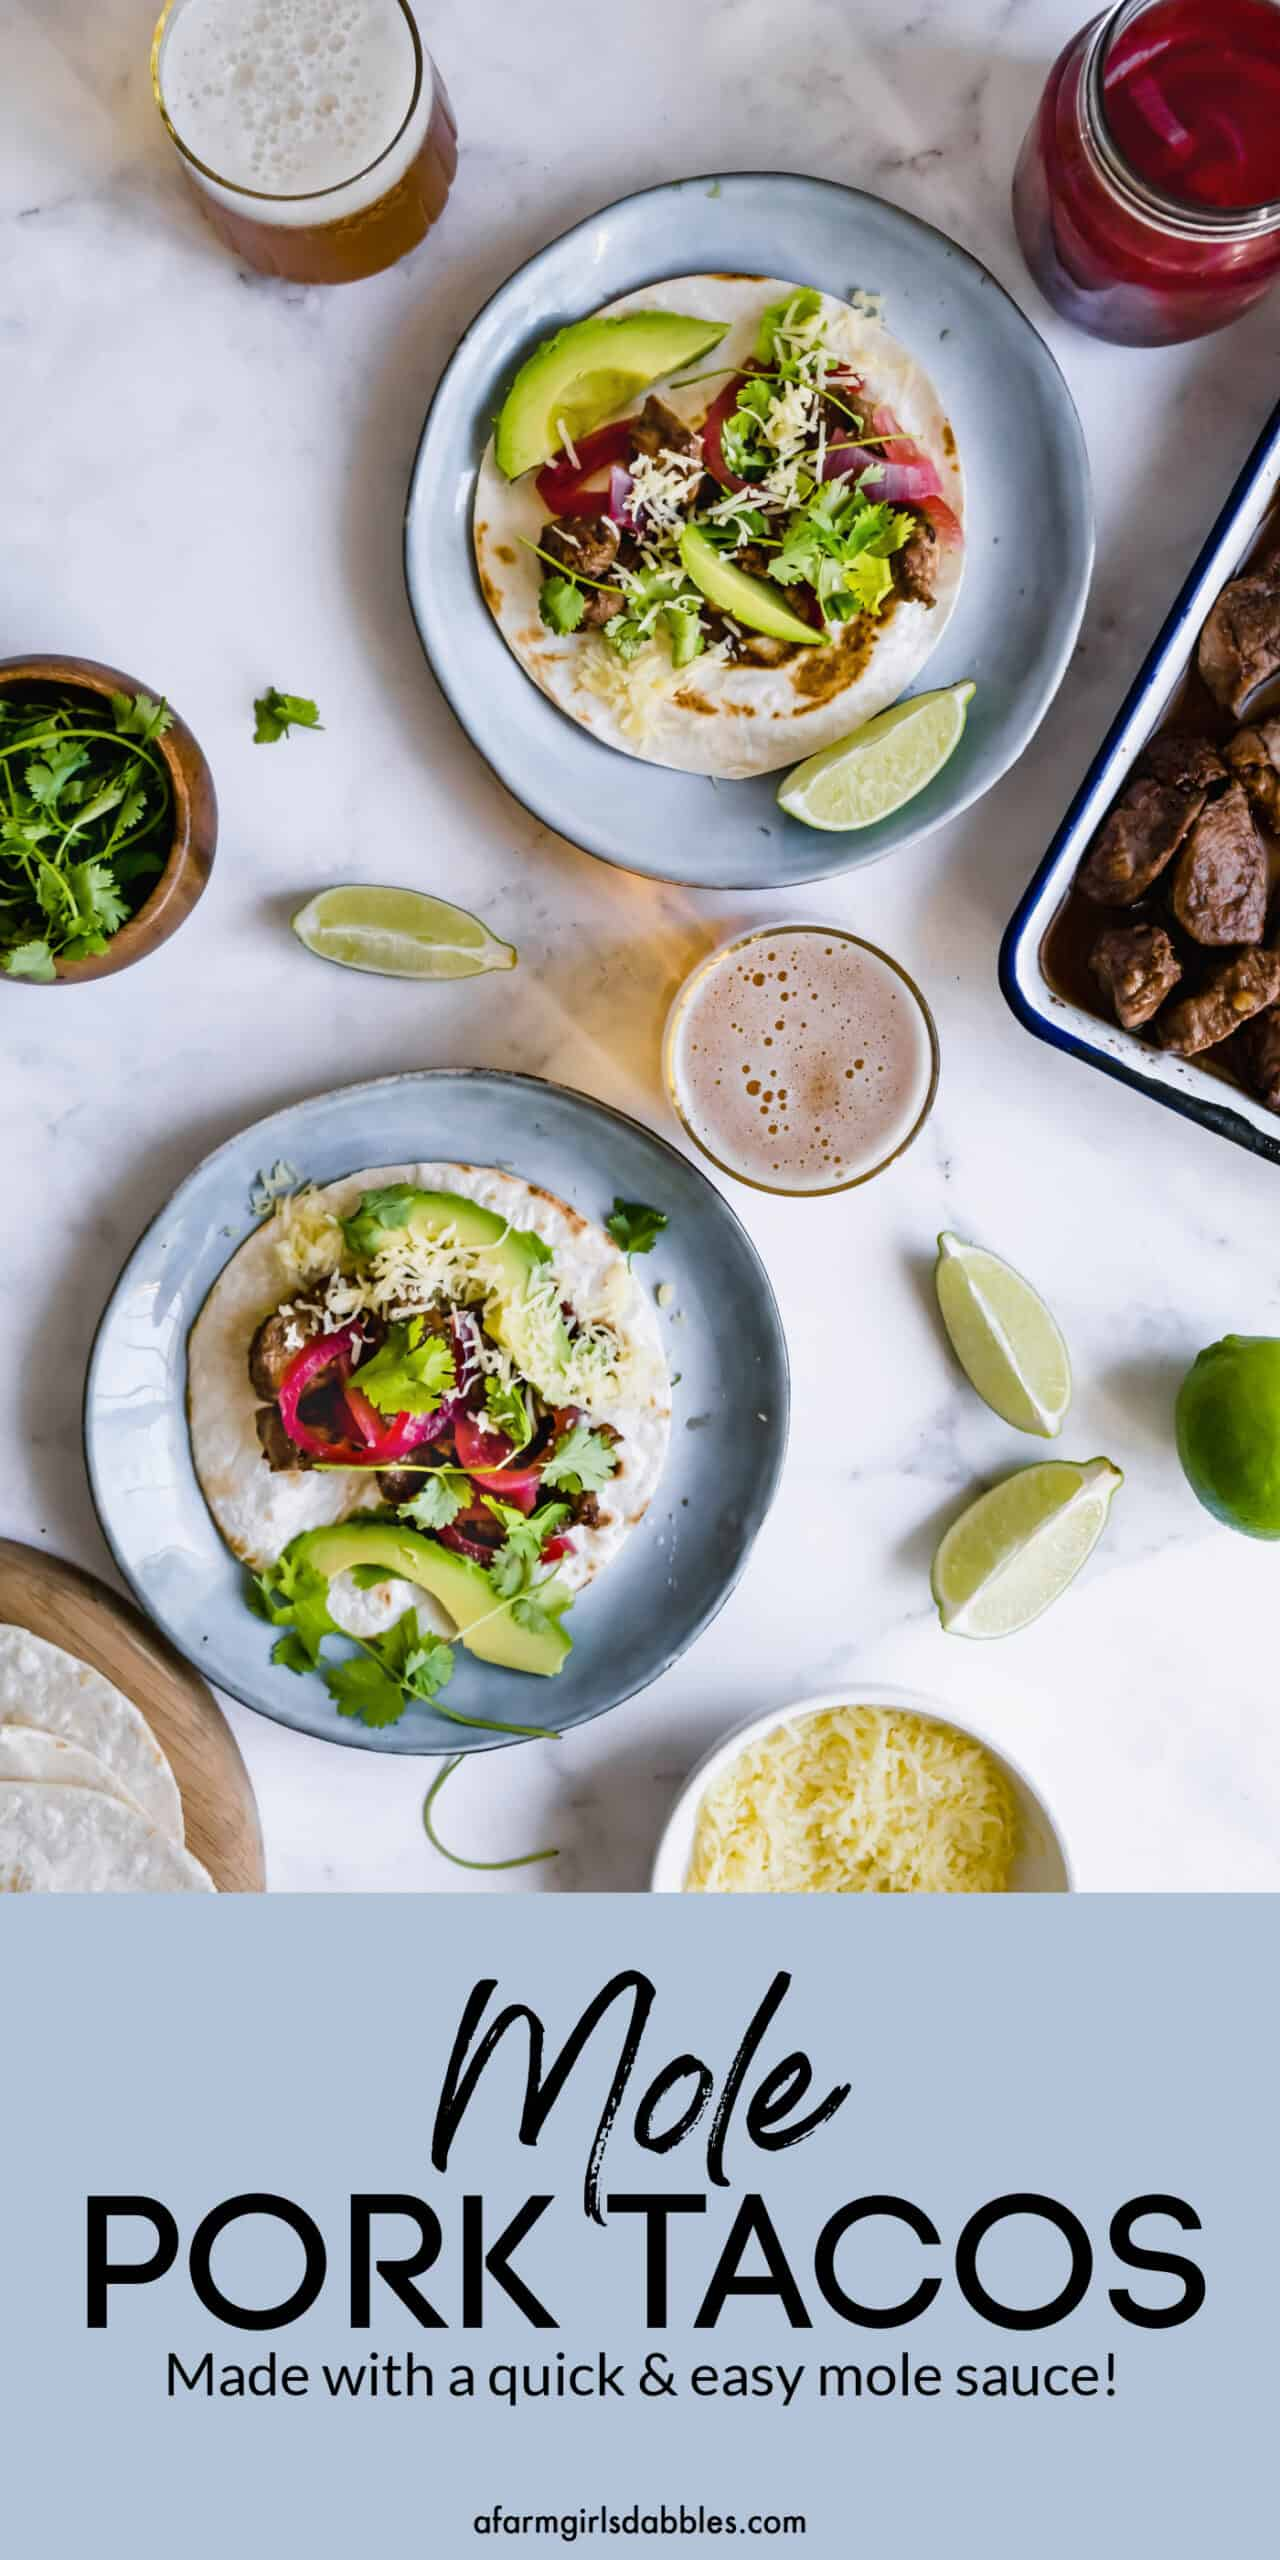 Pinterest image of mole pork tacos